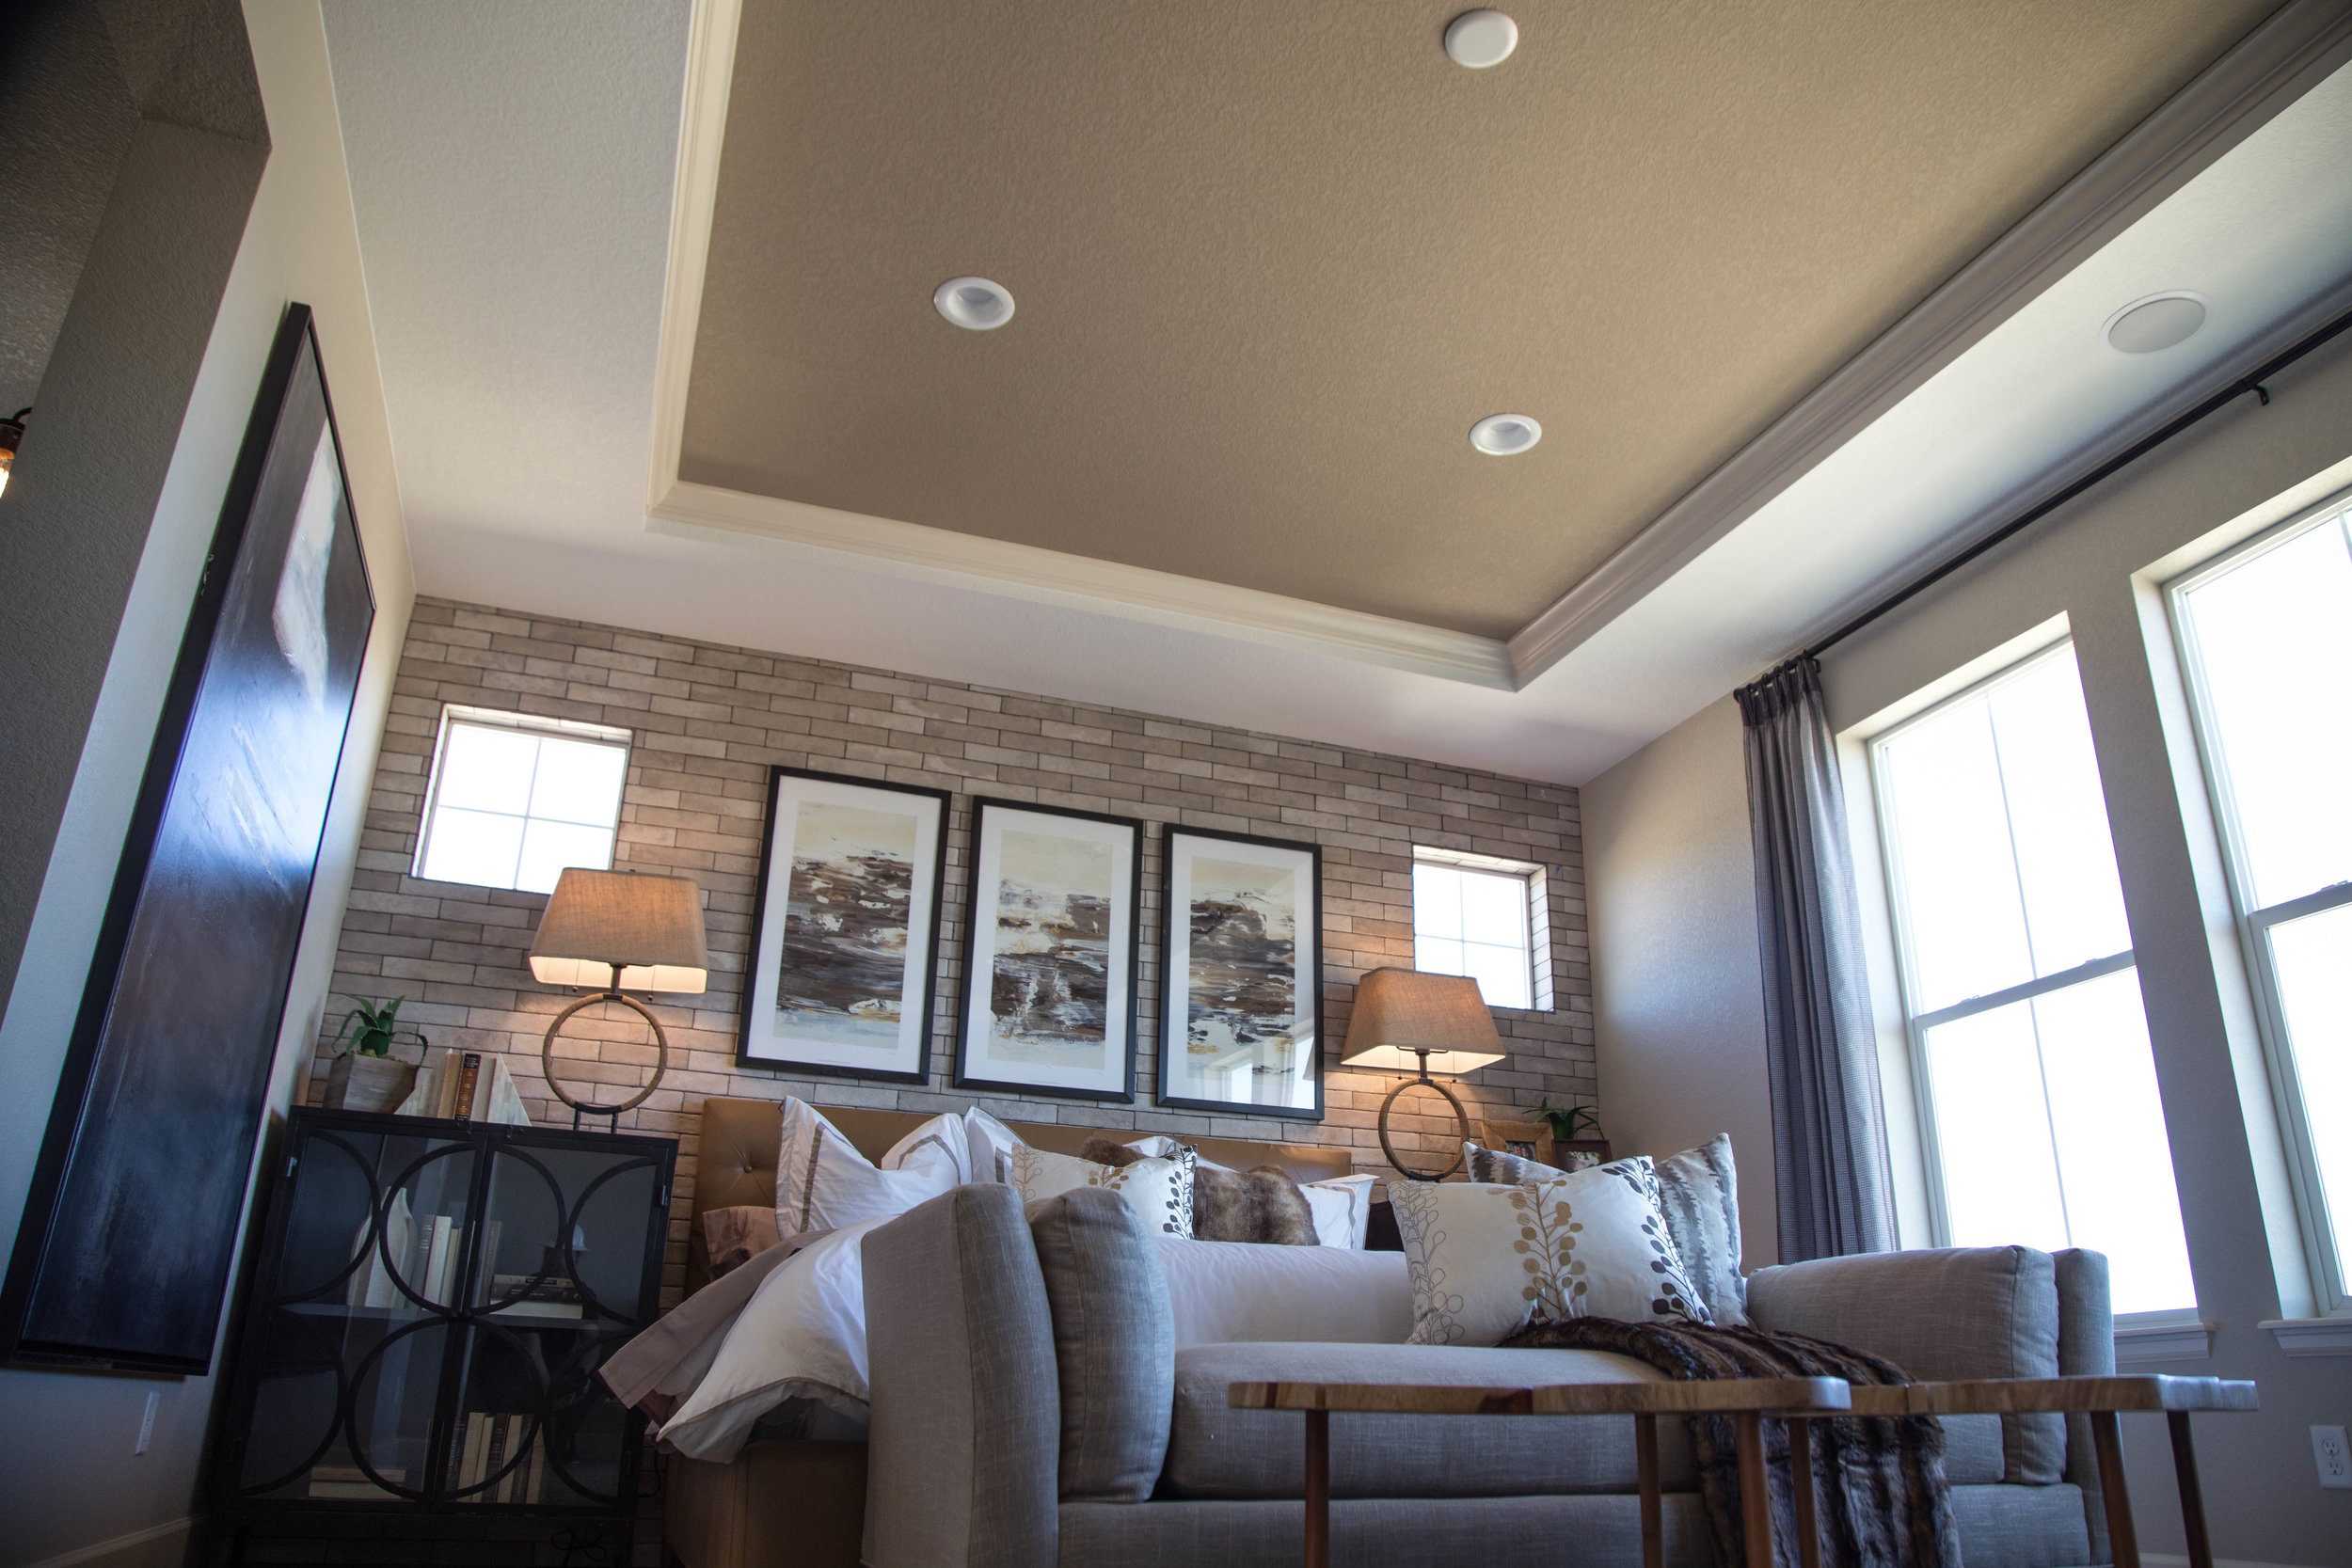 This room features both our Recessed LED Can Lighting as well as a pair of nearly invisible ceiling speakers from TruAudio.